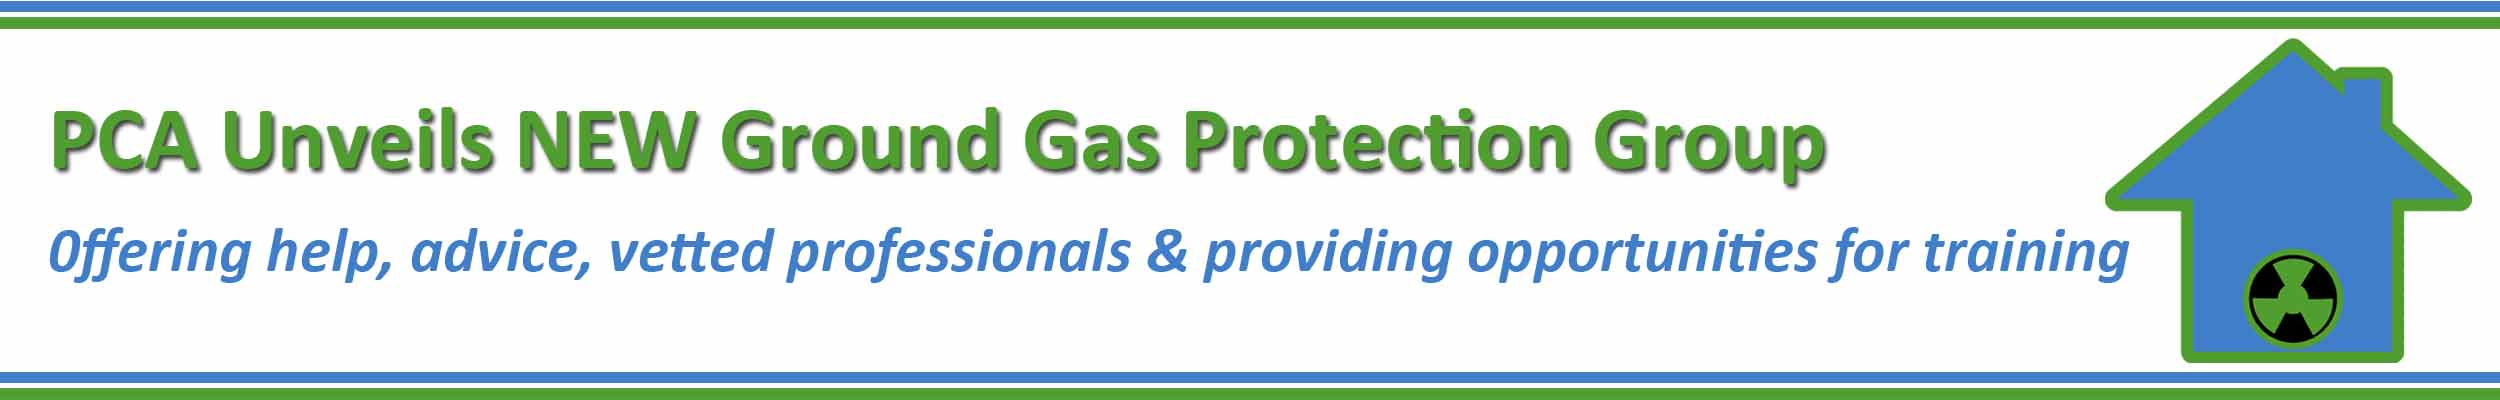 PCA unveils Ground Gas Protection Group and Membershi